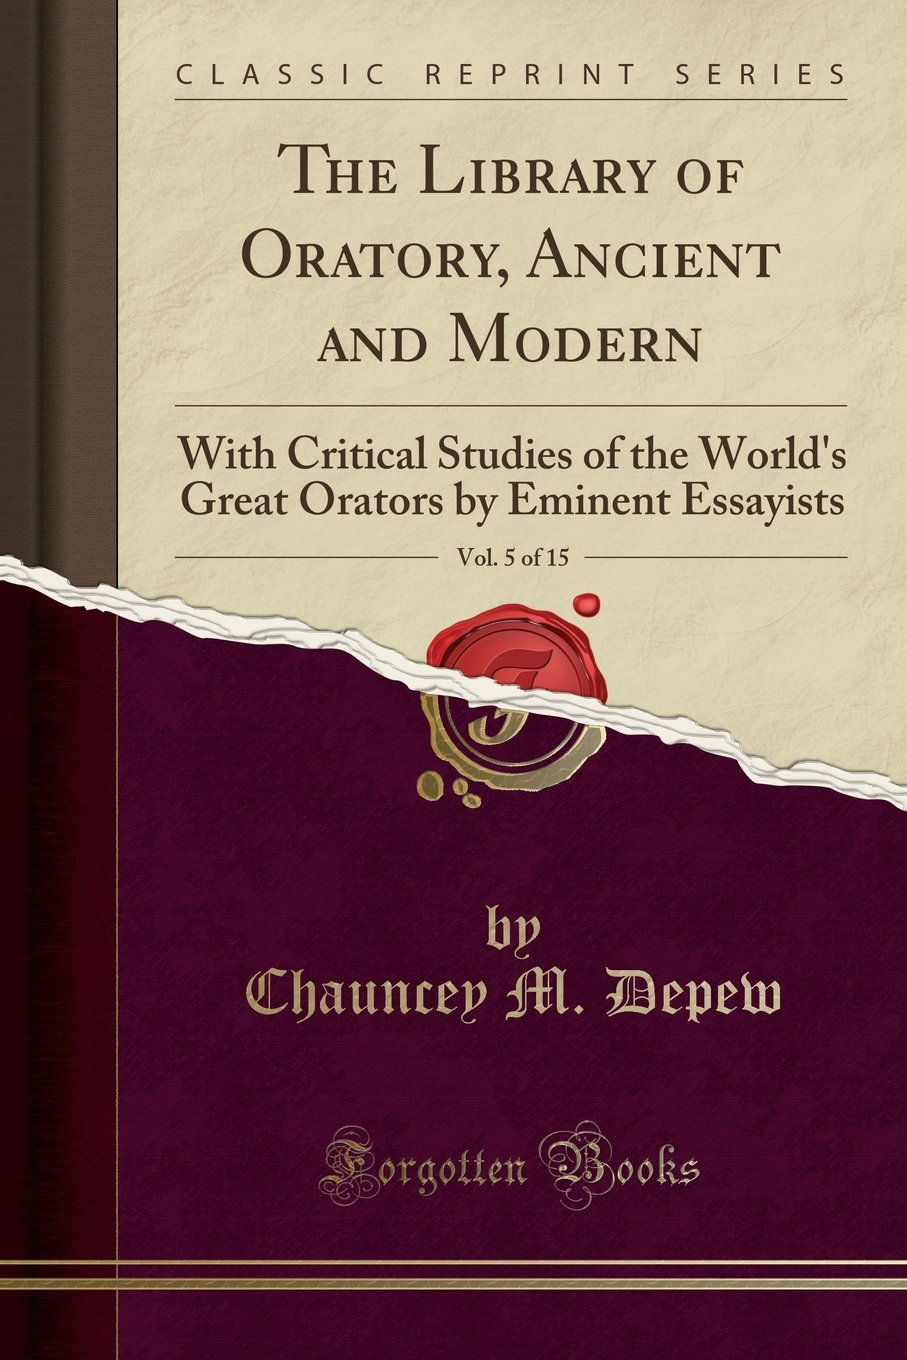 Download The Library of Oratory, Ancient and Modern, Vol. 5 of 15: With Critical Studies of the World's Great Orators by Eminent Essayists (Classic Reprint) ebook